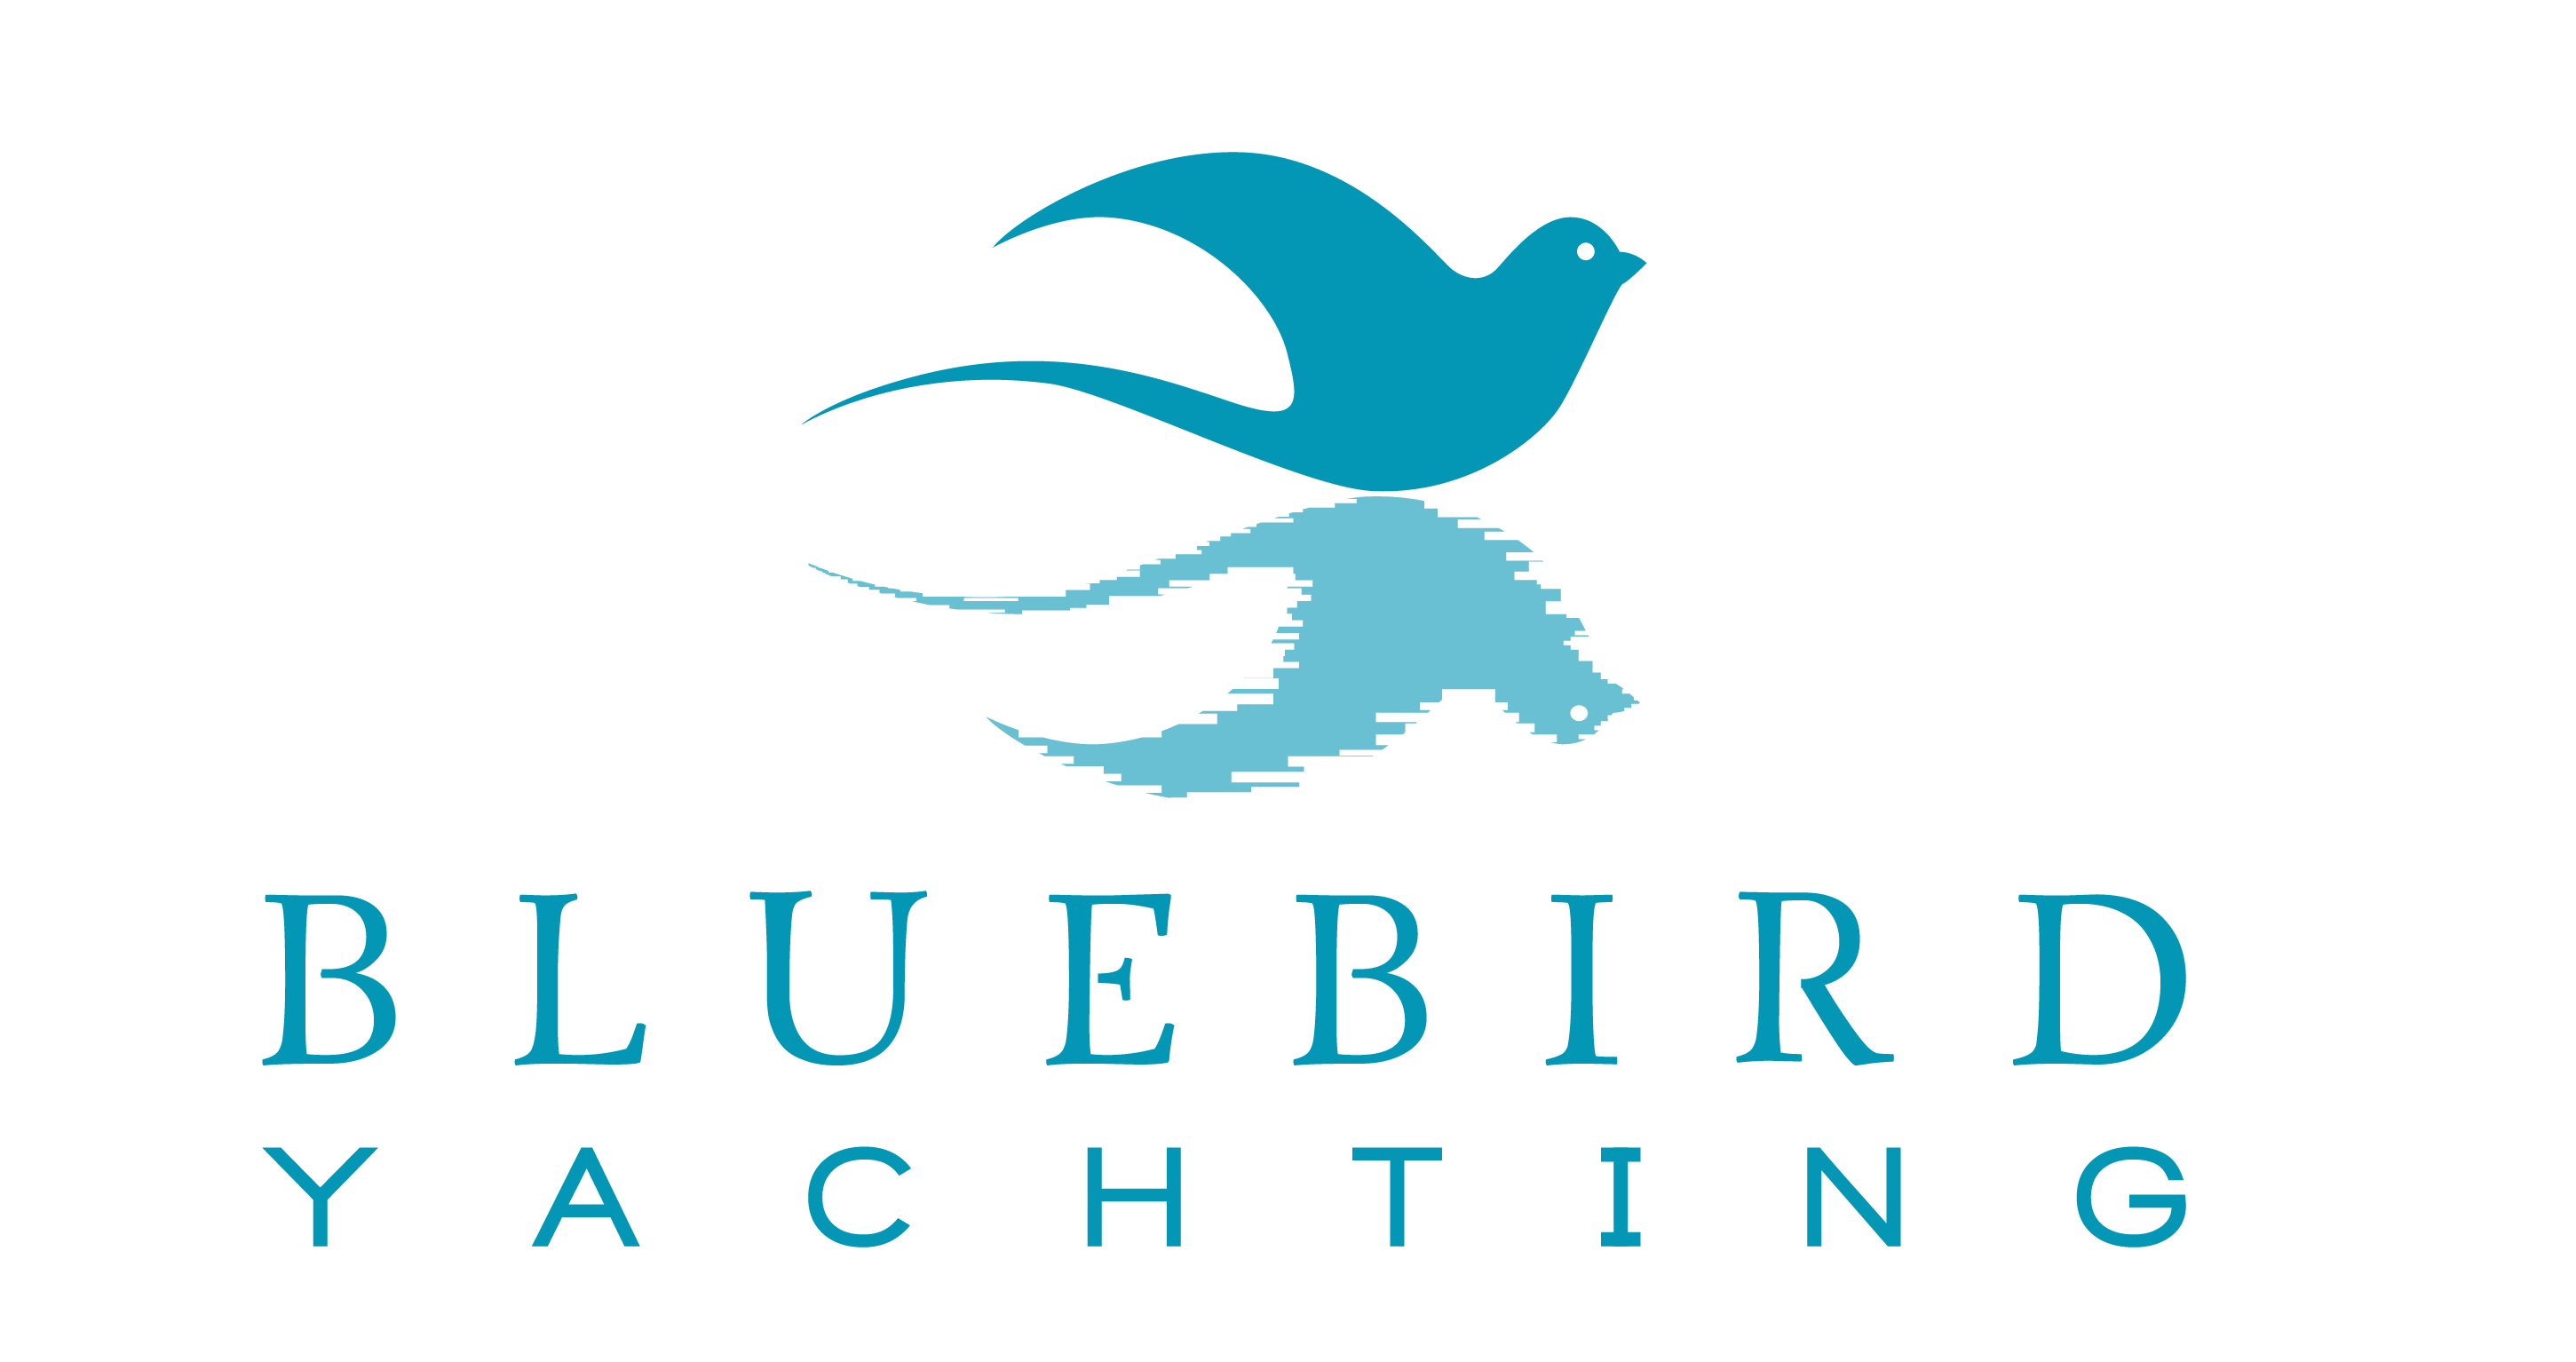 Bluebird Yachting | Cote d'Azur | Bluebird Yachting